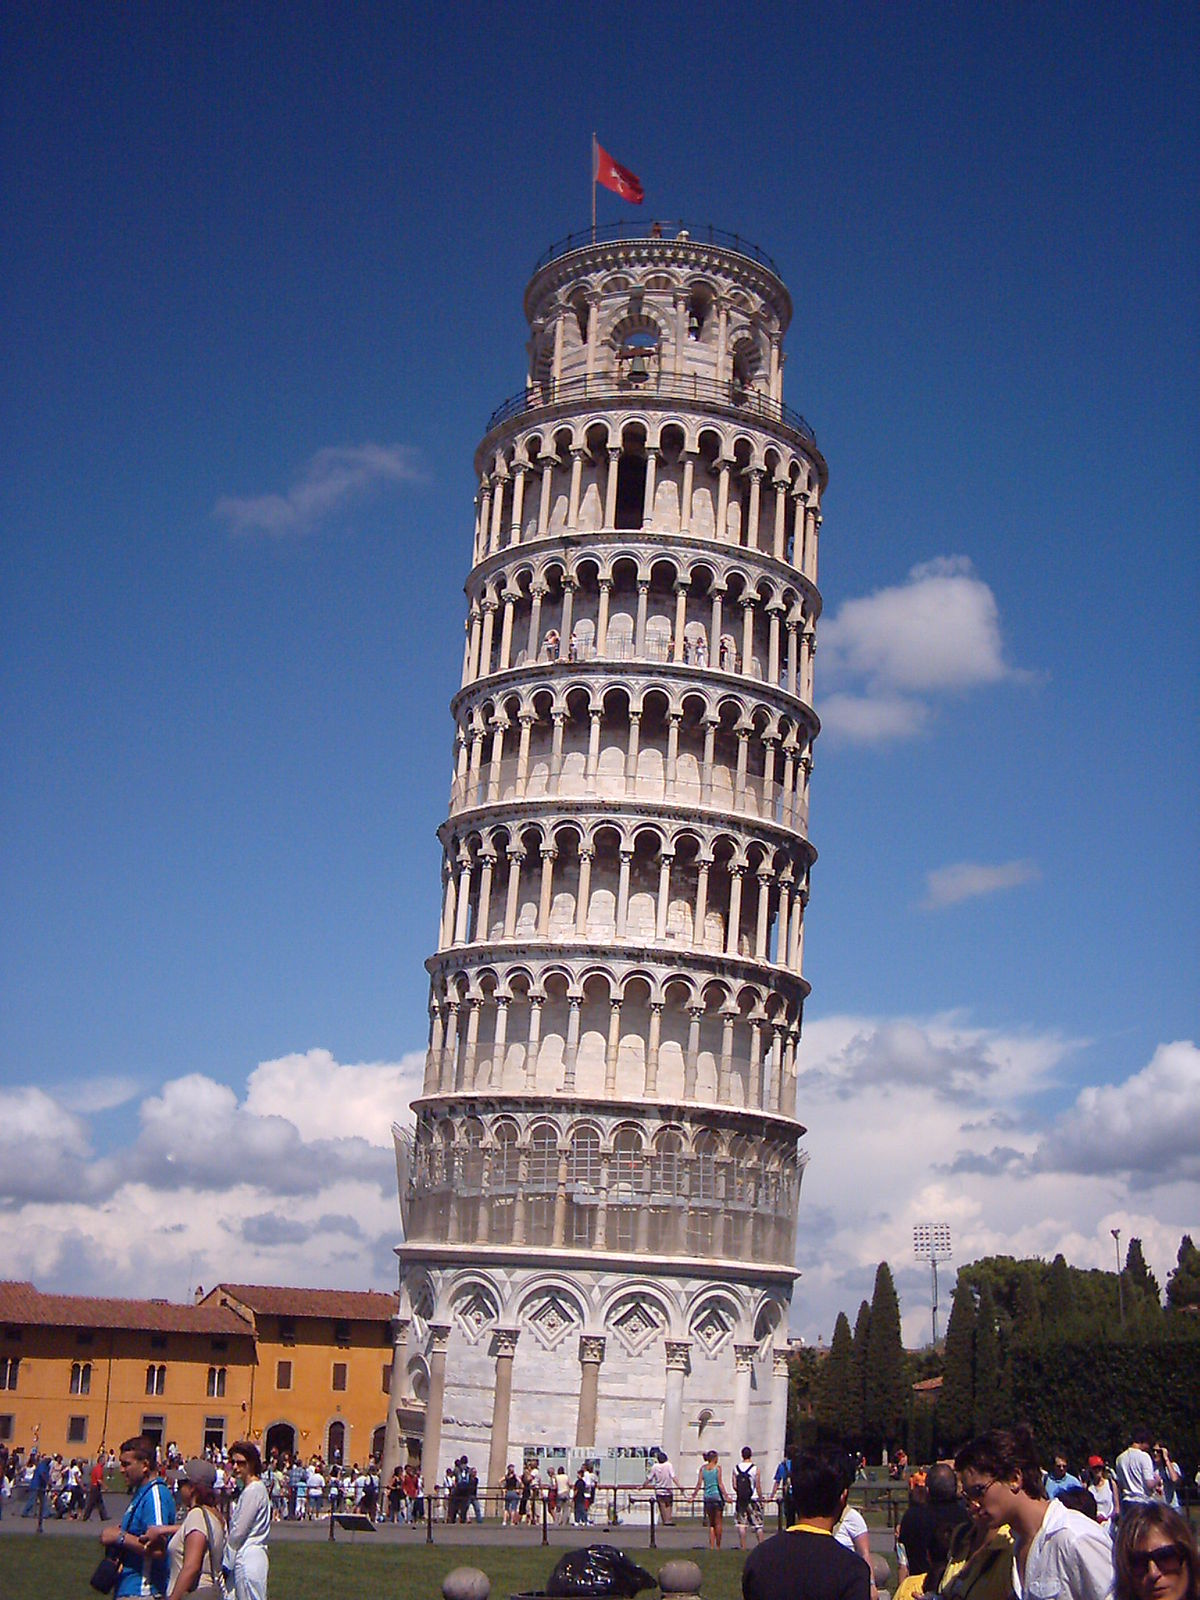 Pisa travel guide at wikivoyage - Leaning tower of pisa ...